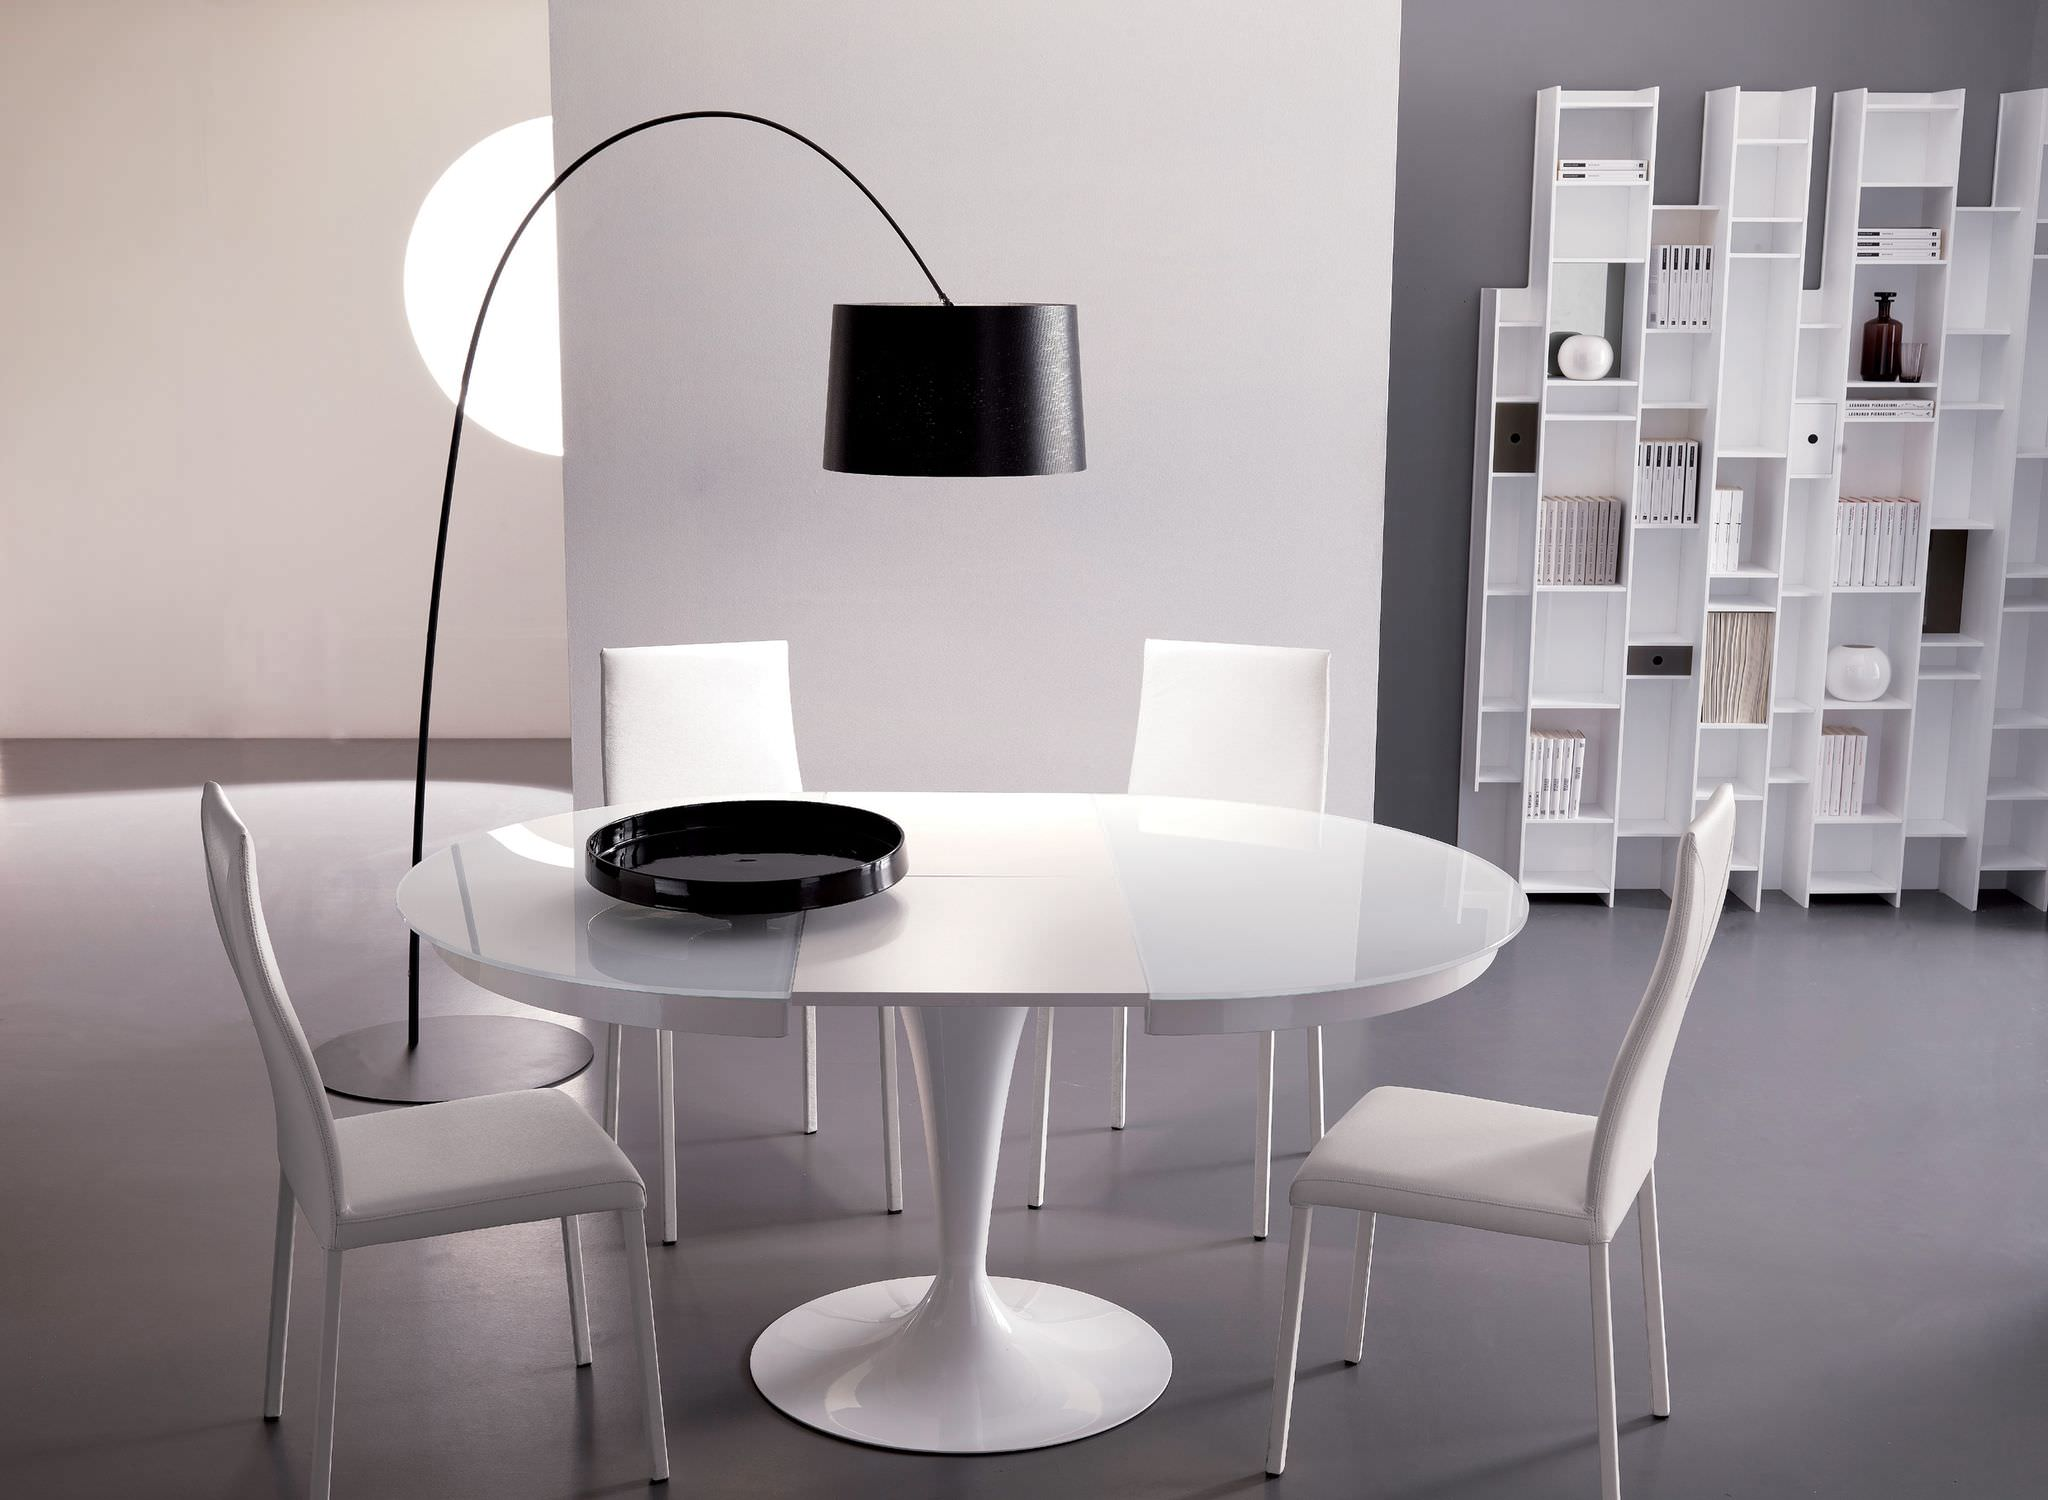 expandable dining table set in white theme on grey floor matched with white  wall plus rack. Dining Room  Stunning Expandable Dining Table Set In White For